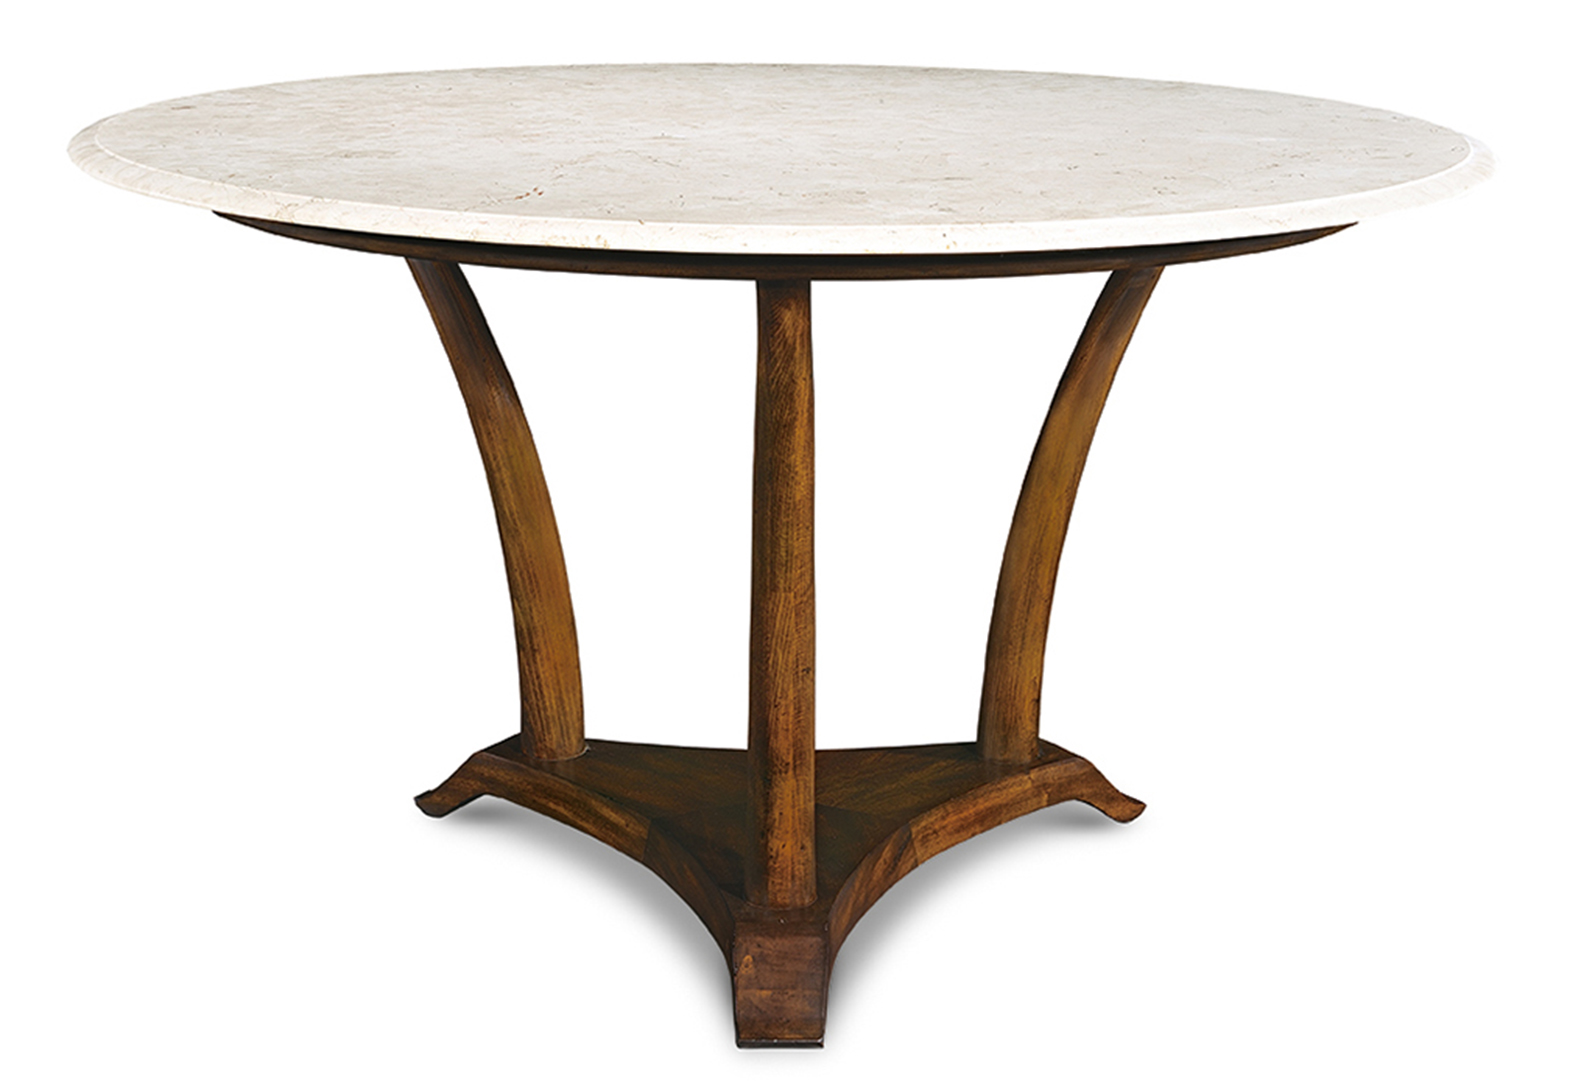 LECCE CENTER TABLE